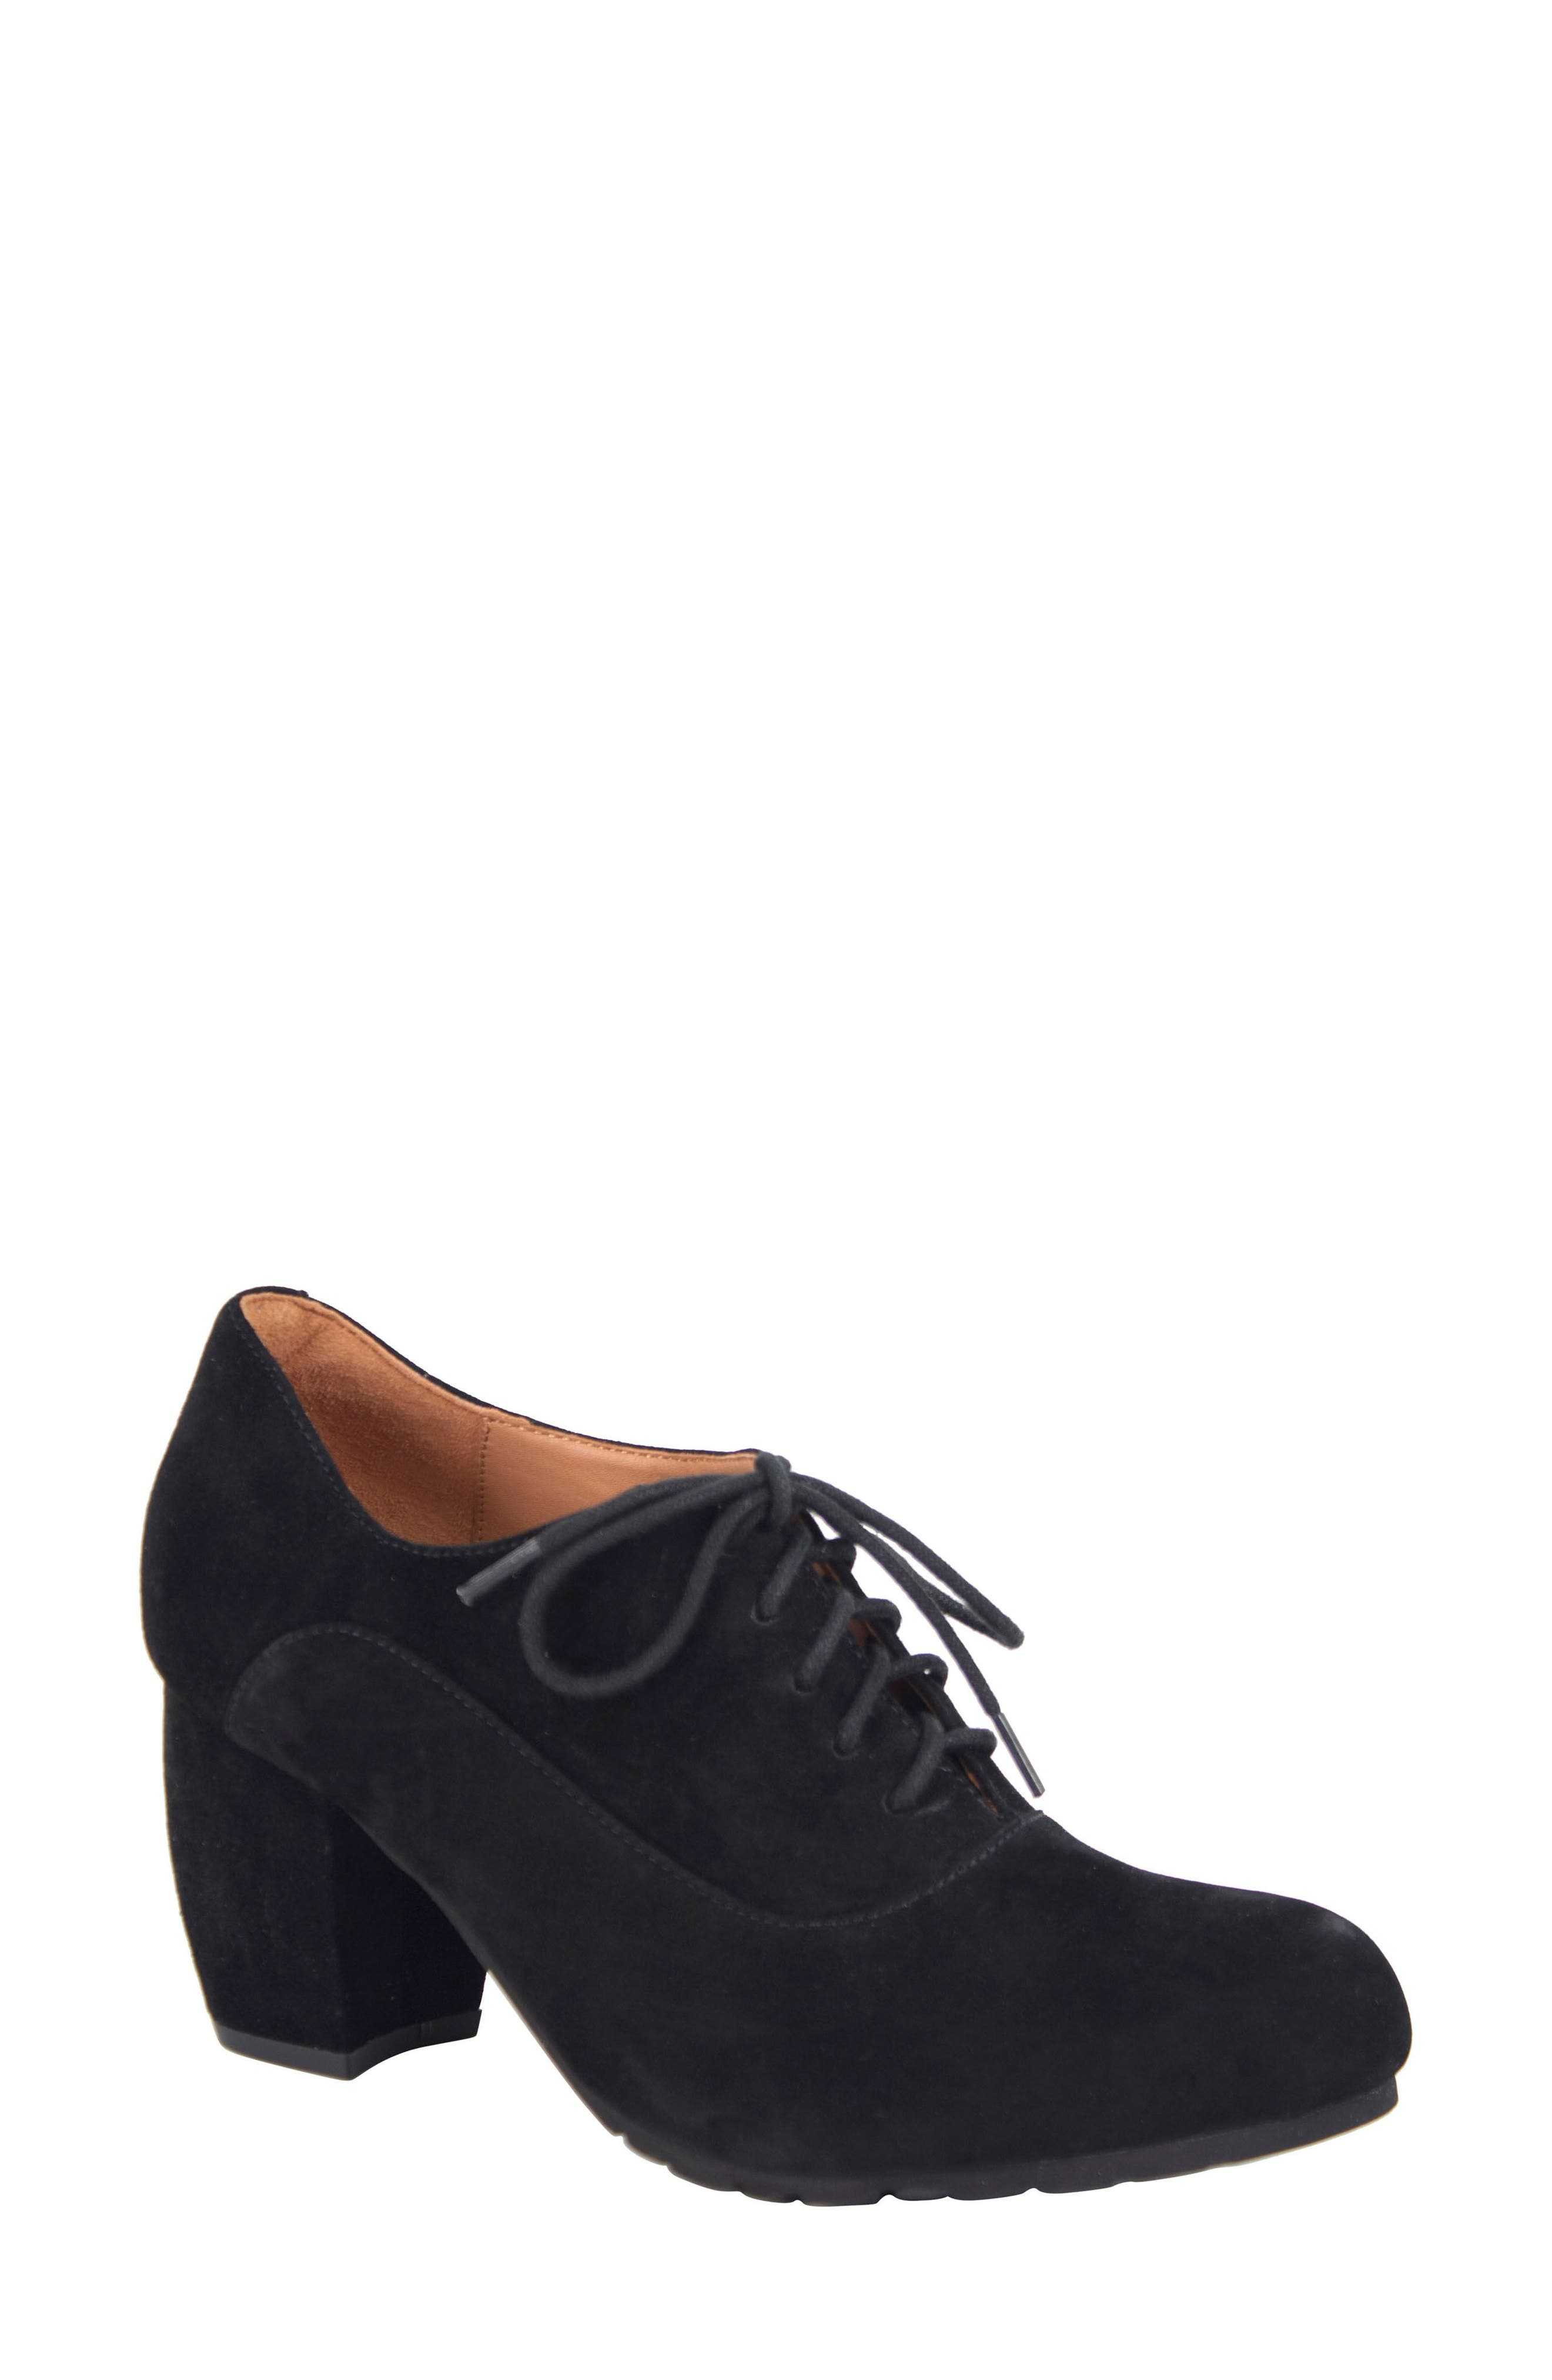 Main Image - L'Amour des Pieds Pardoe Lace-Up Bootie (Women)